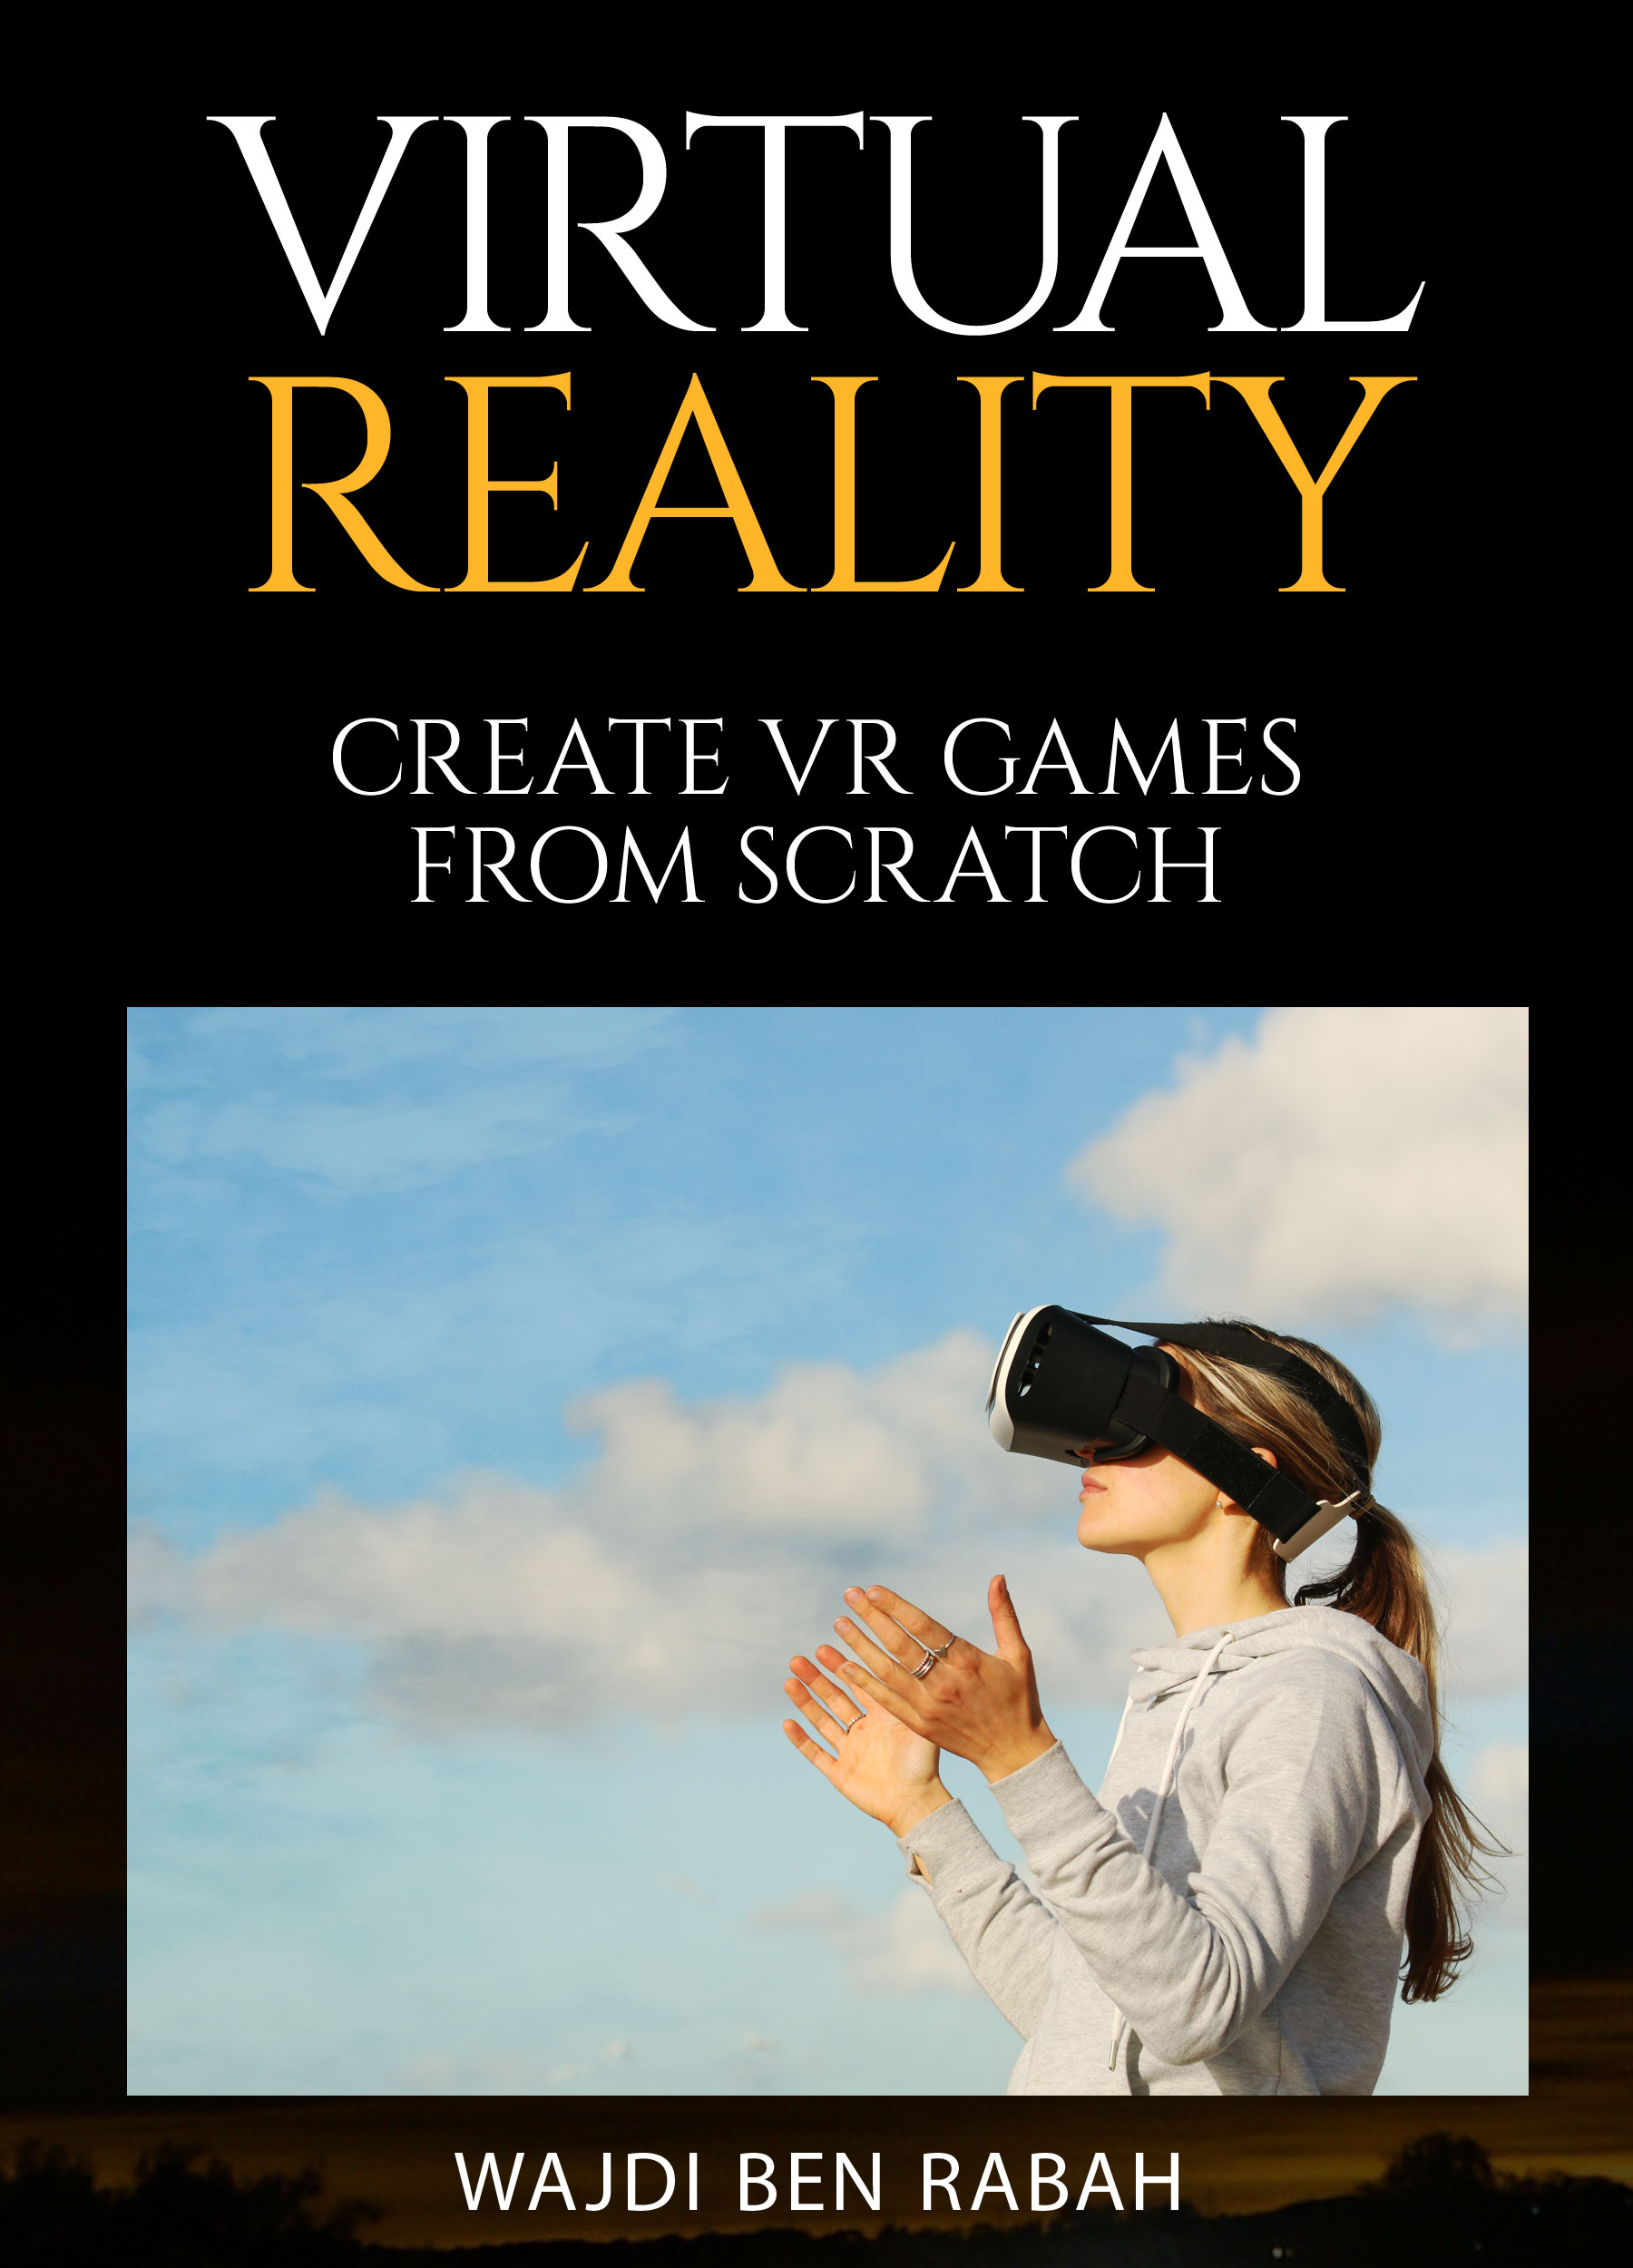 Virtual Reality book by Wajdi Ben Rabah